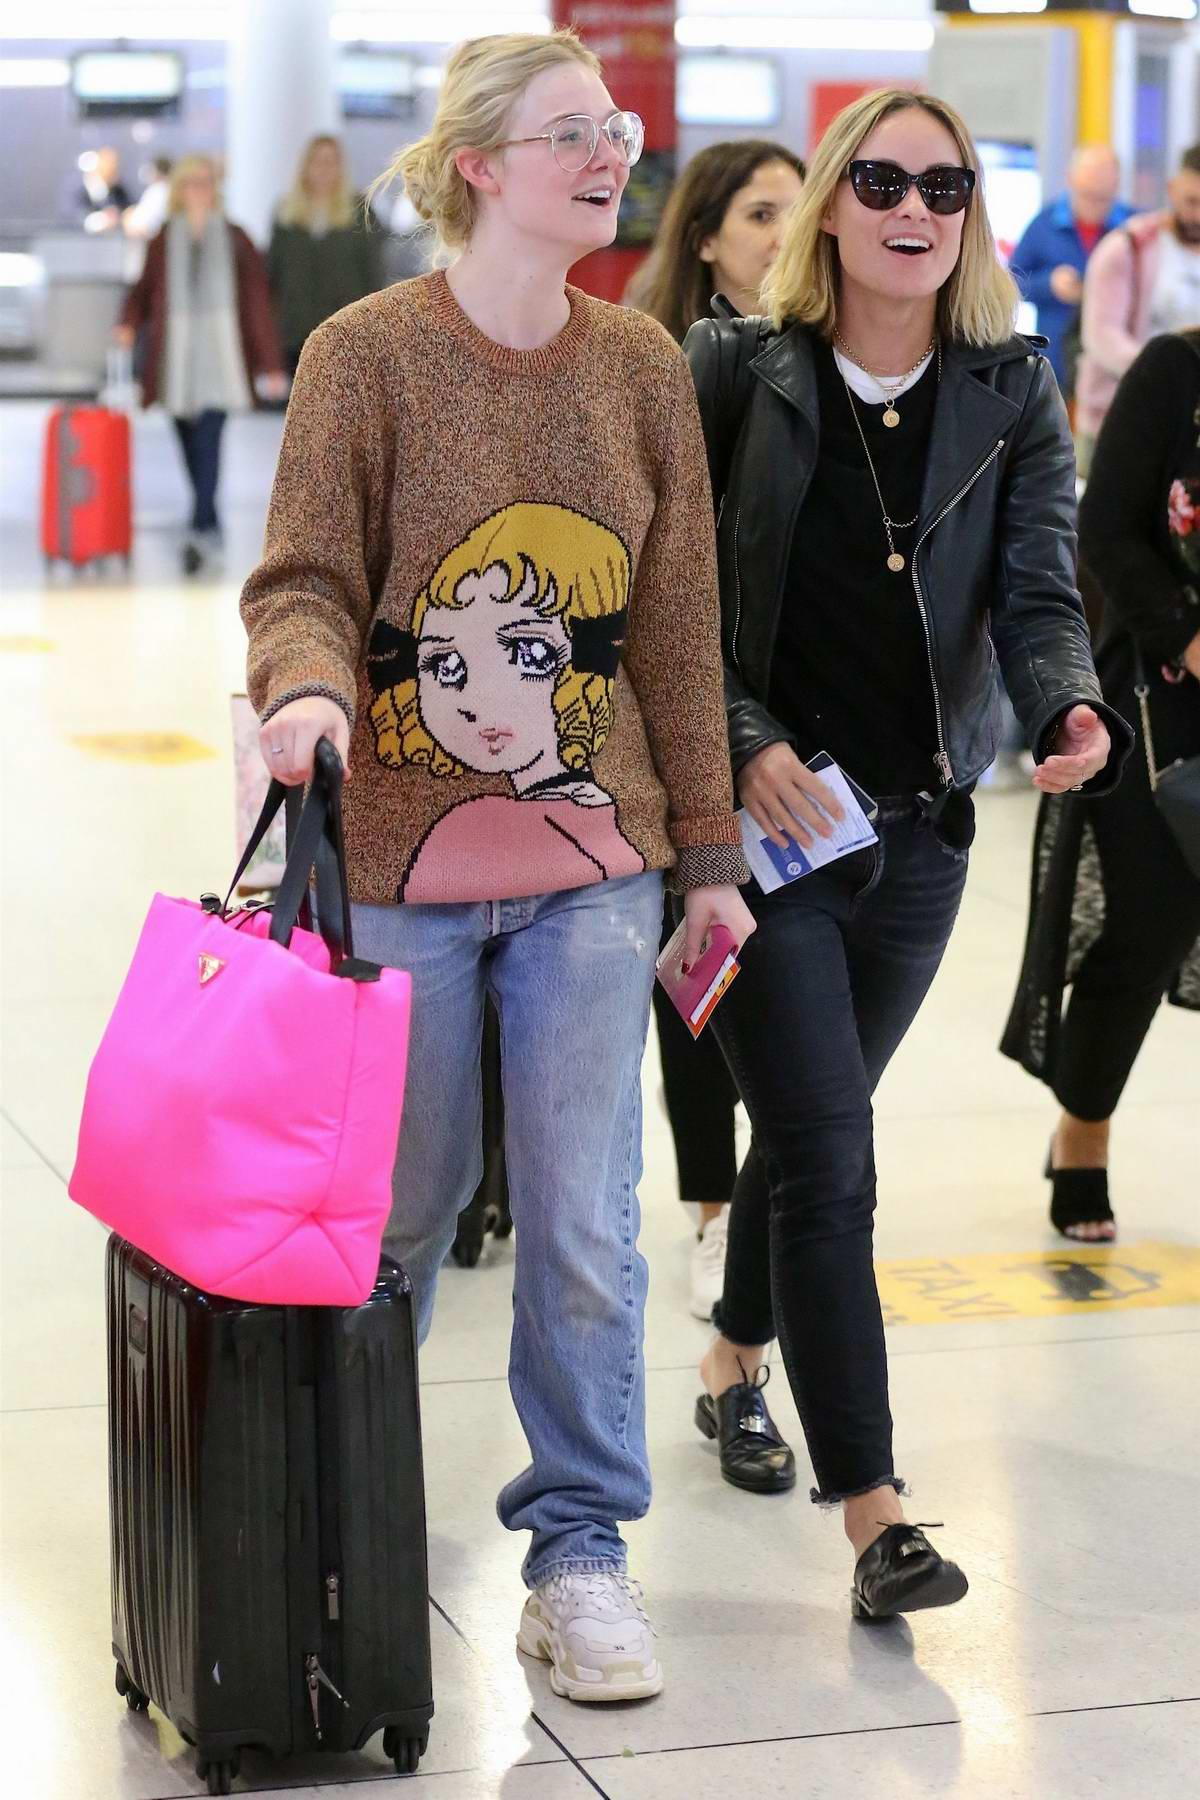 Olivia Wilde and Elle Fanning share a laugh as they arrive together at JFK airport in New York City